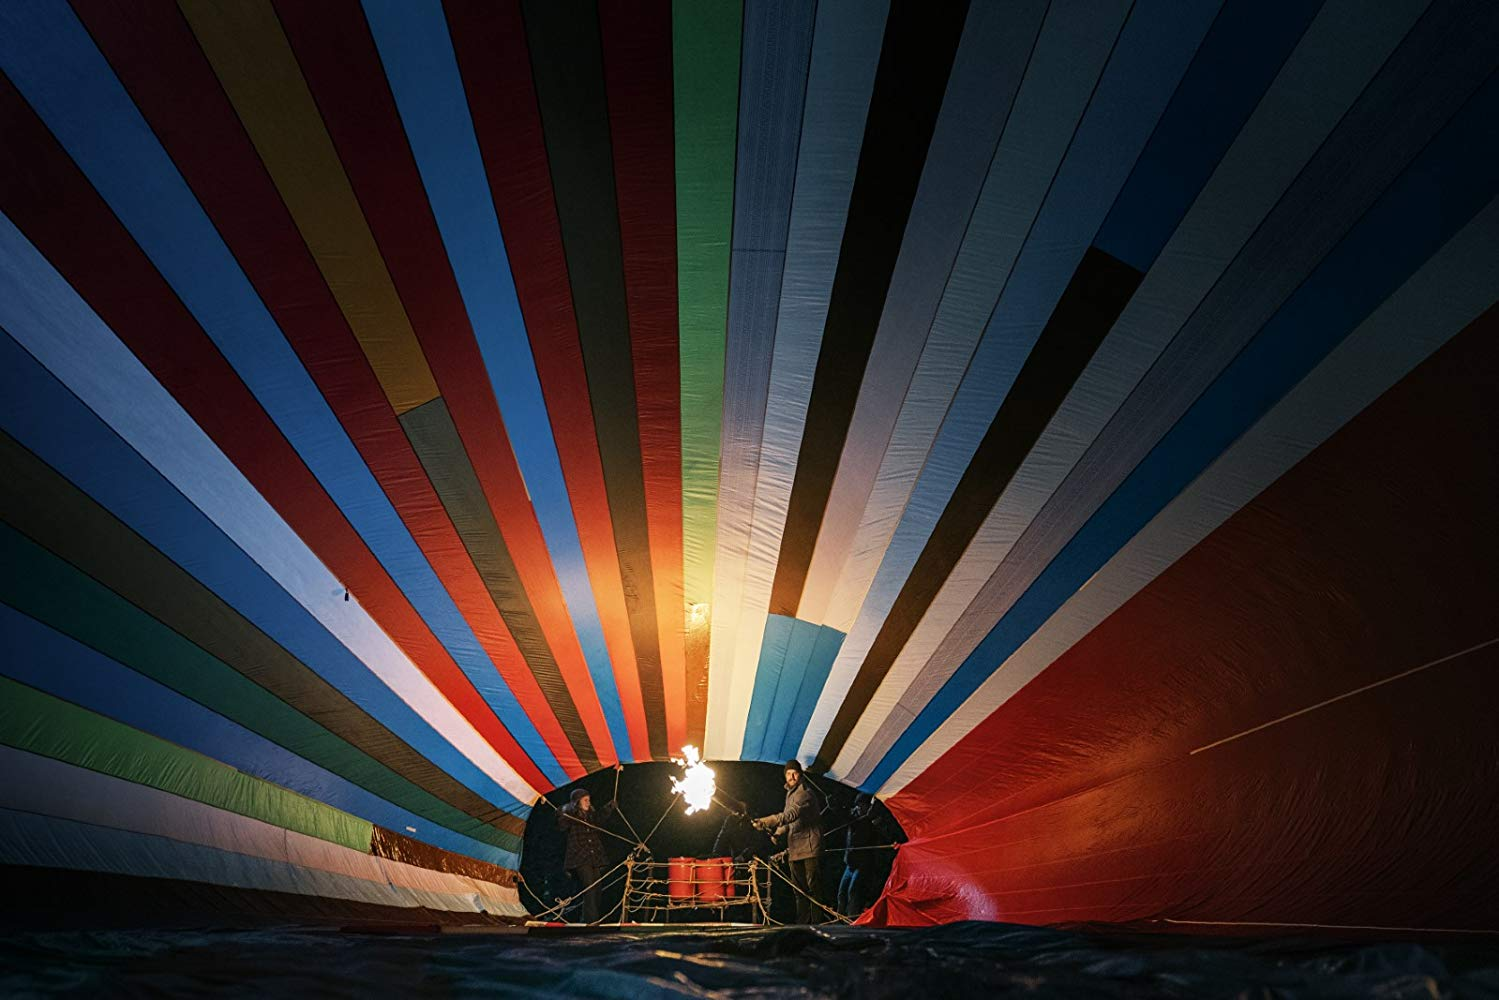 Balloon - Director: Michael HerbigCountry: GermanyRun Time: 2 Hours 5 MinutesLanguage: German with English subtitles